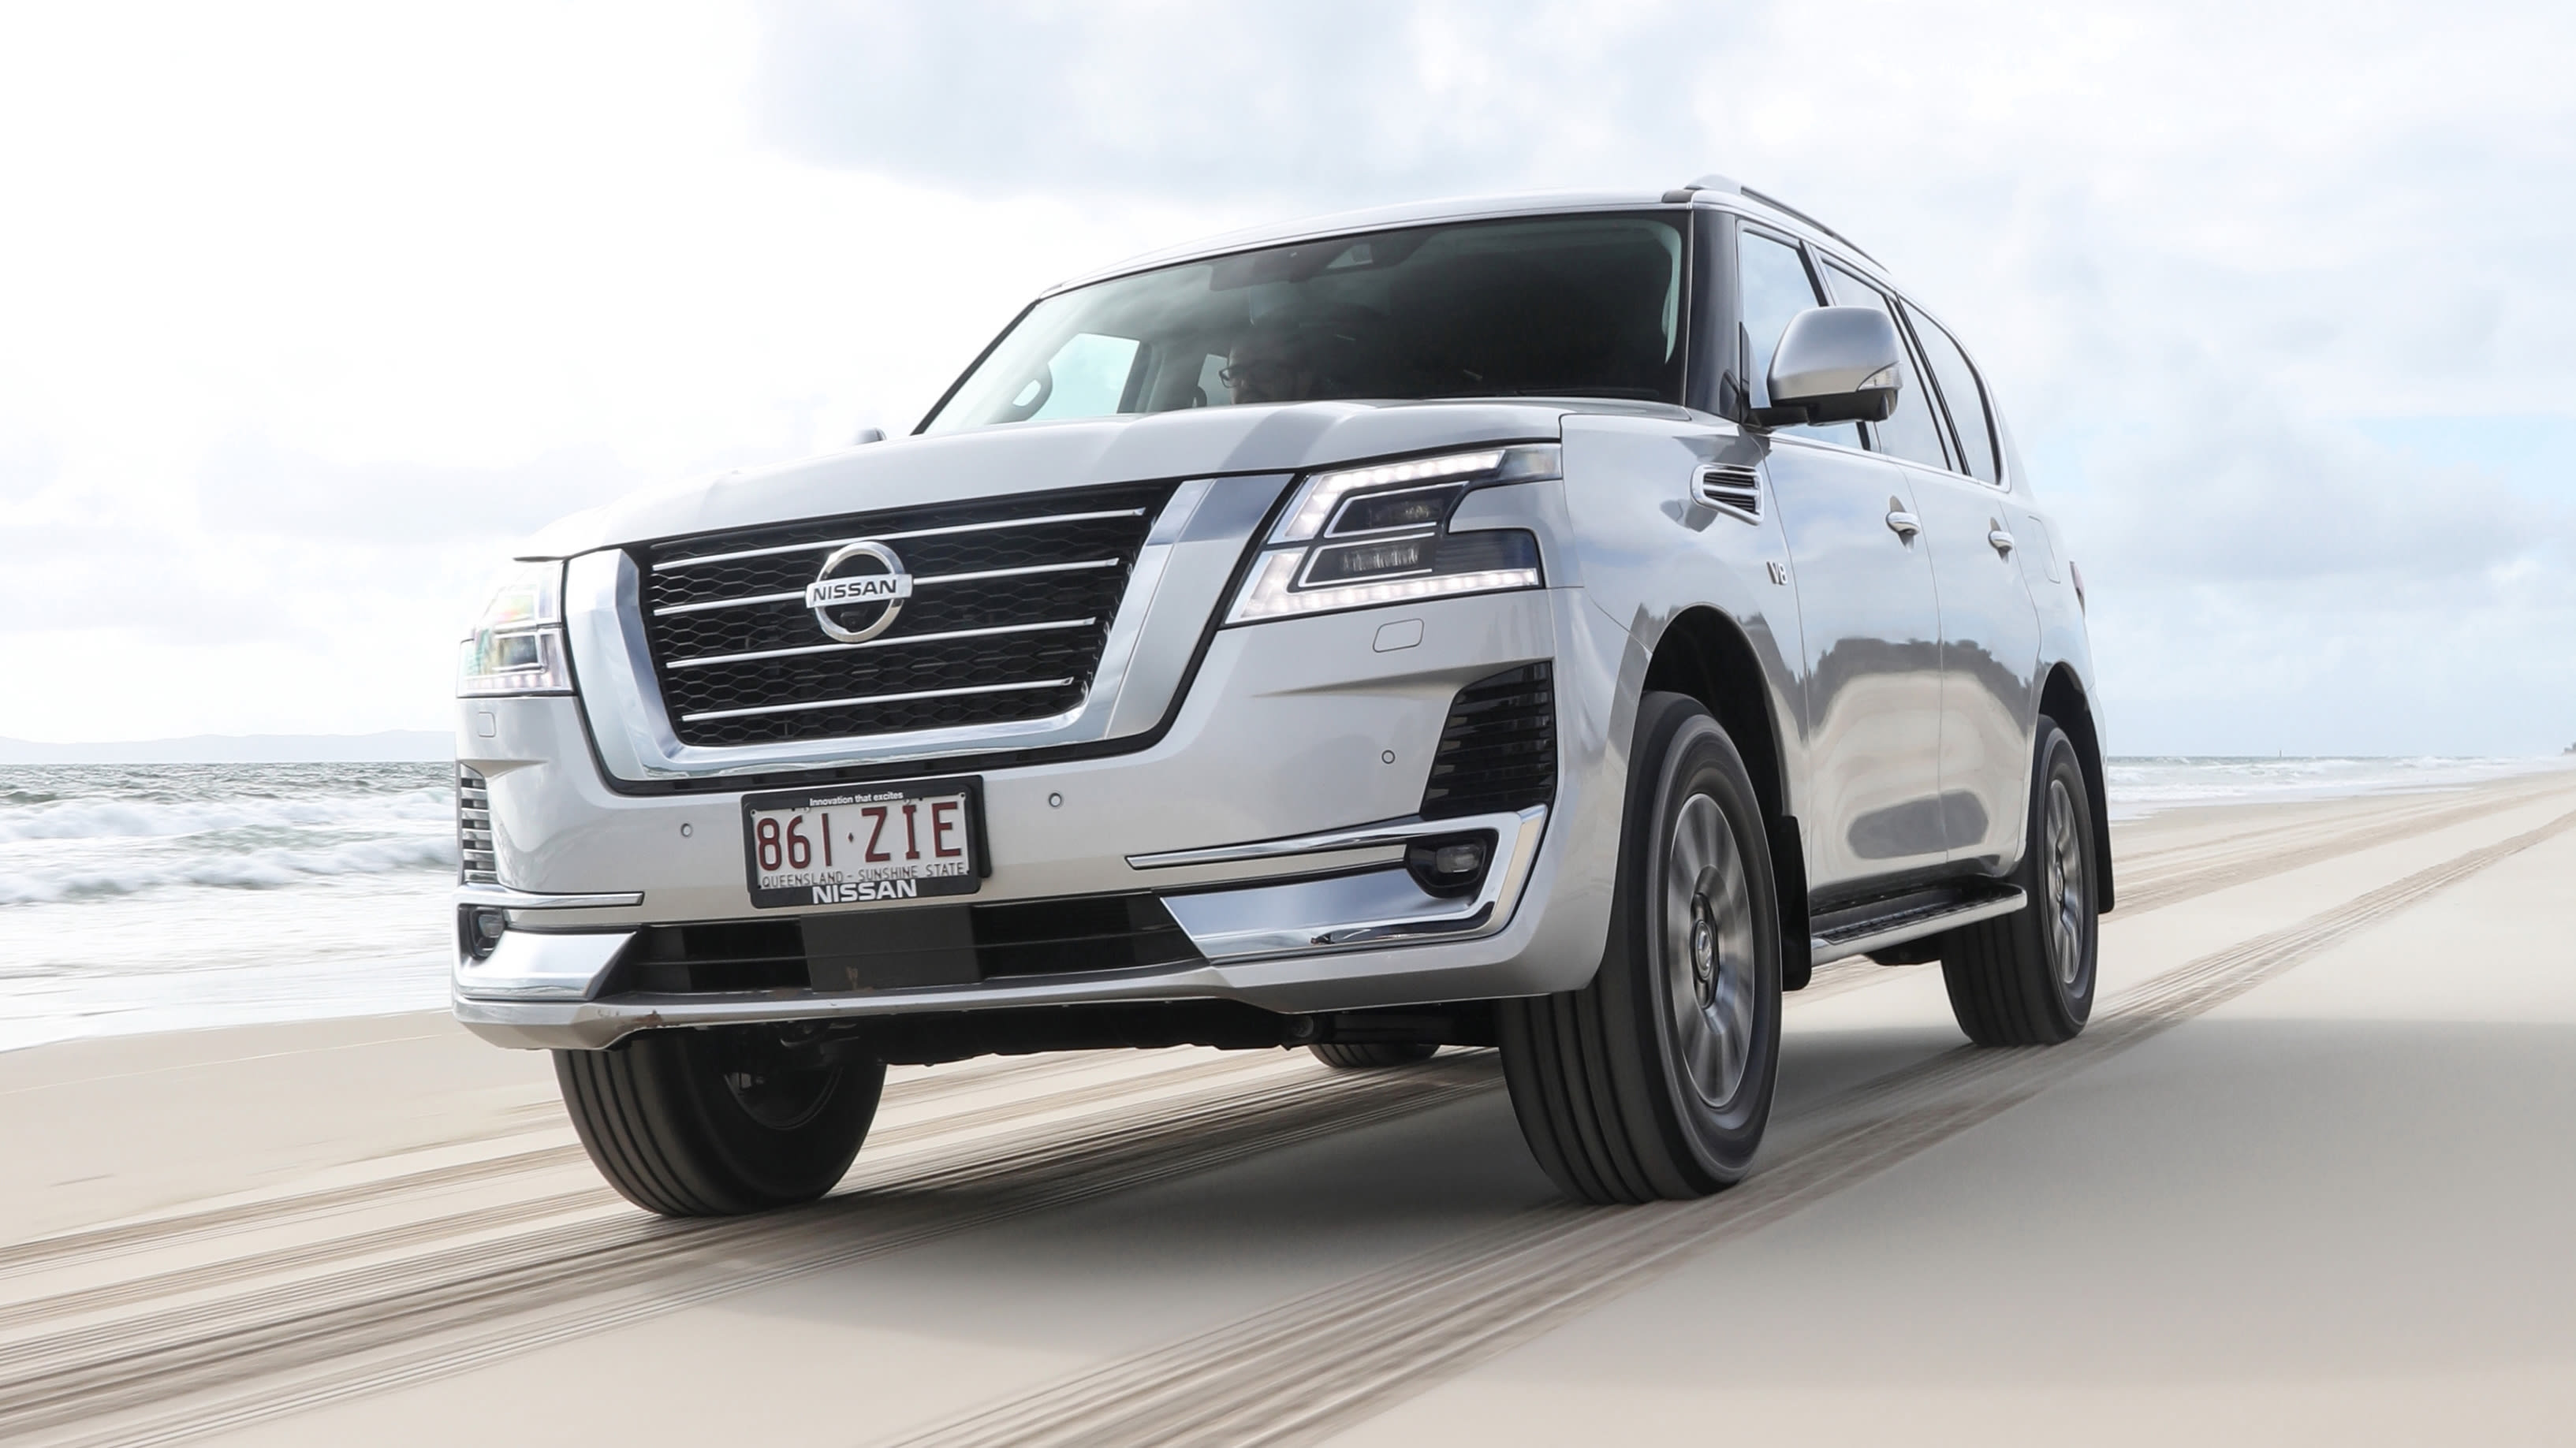 2020 Nissan Patrol Pricing And Specs Aeb Now Standard No Carplay Android For Australia Caradvice